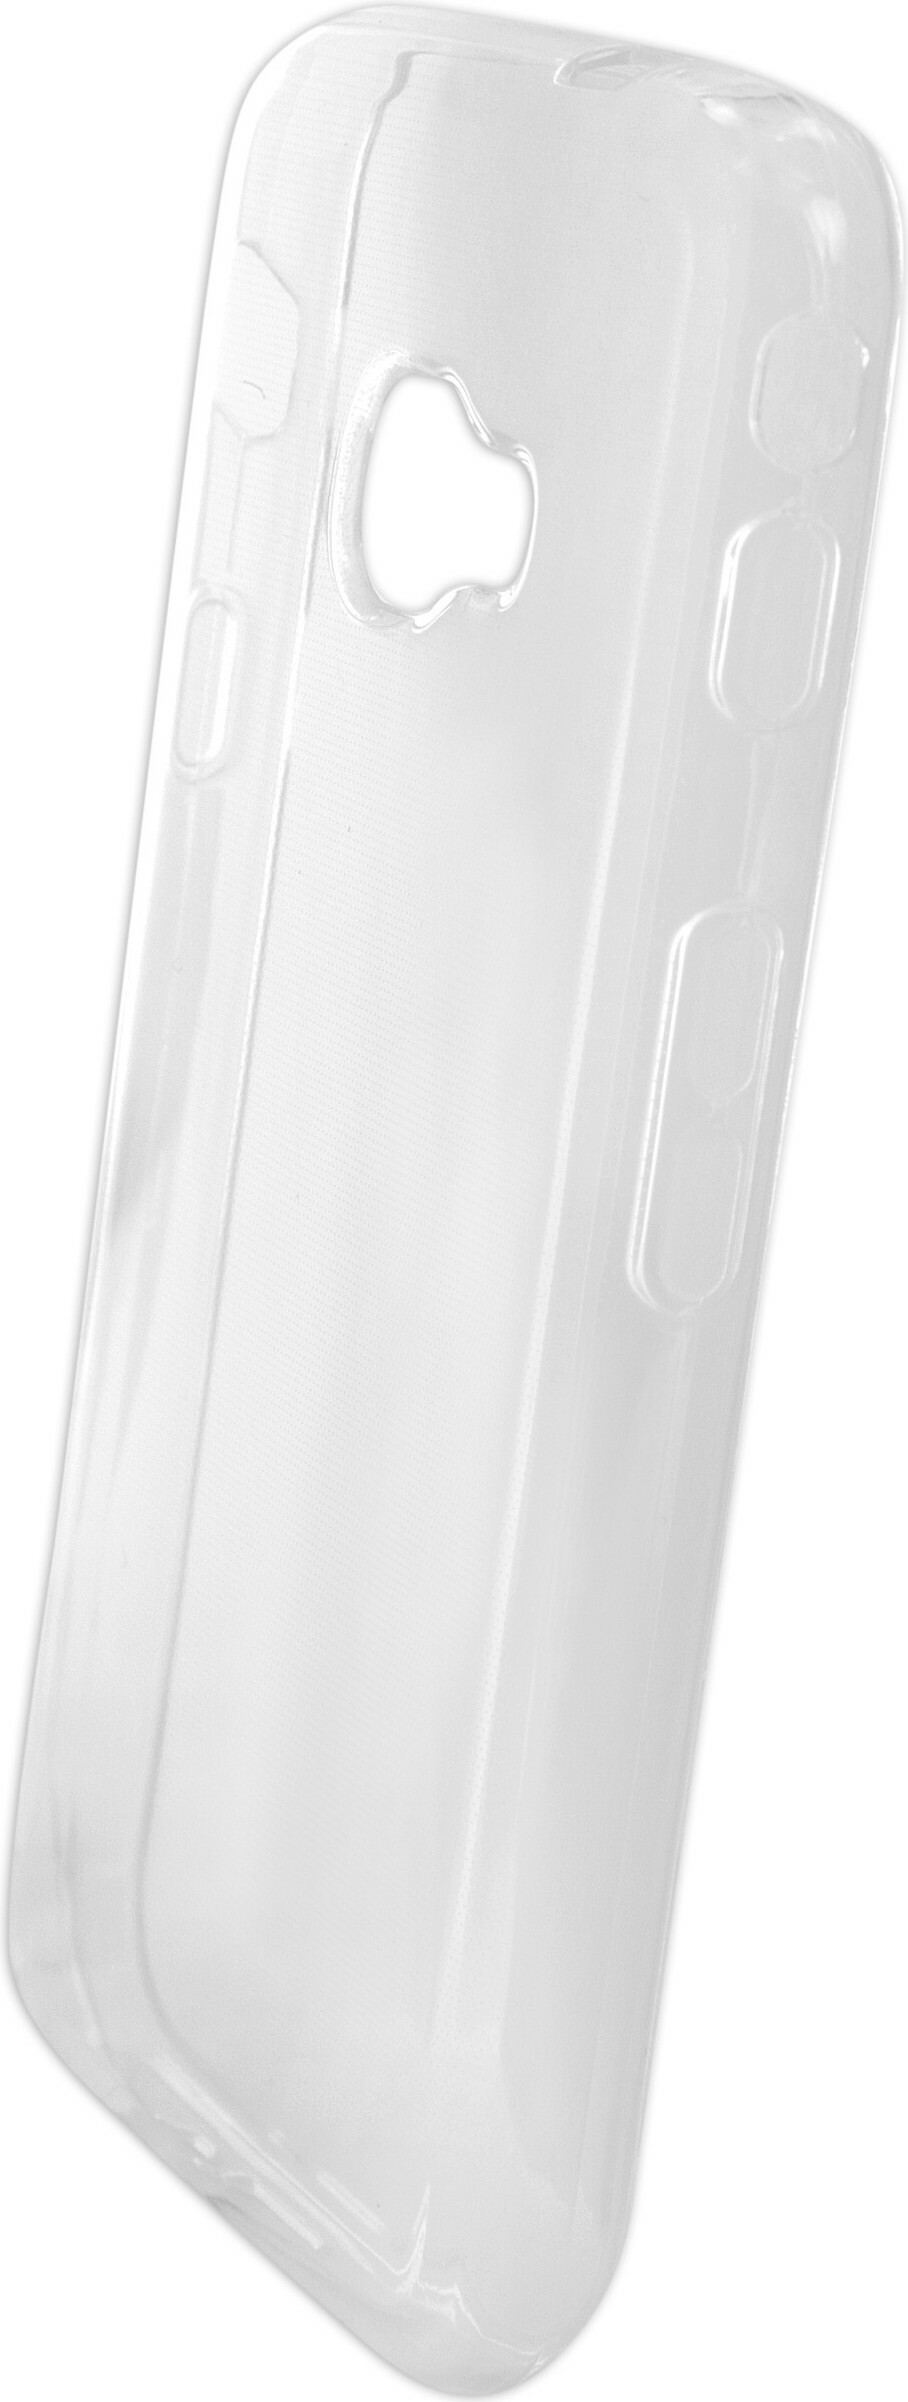 Mobiparts Classic TPU Case Samsung Galaxy Xcover 4/4S Transparent